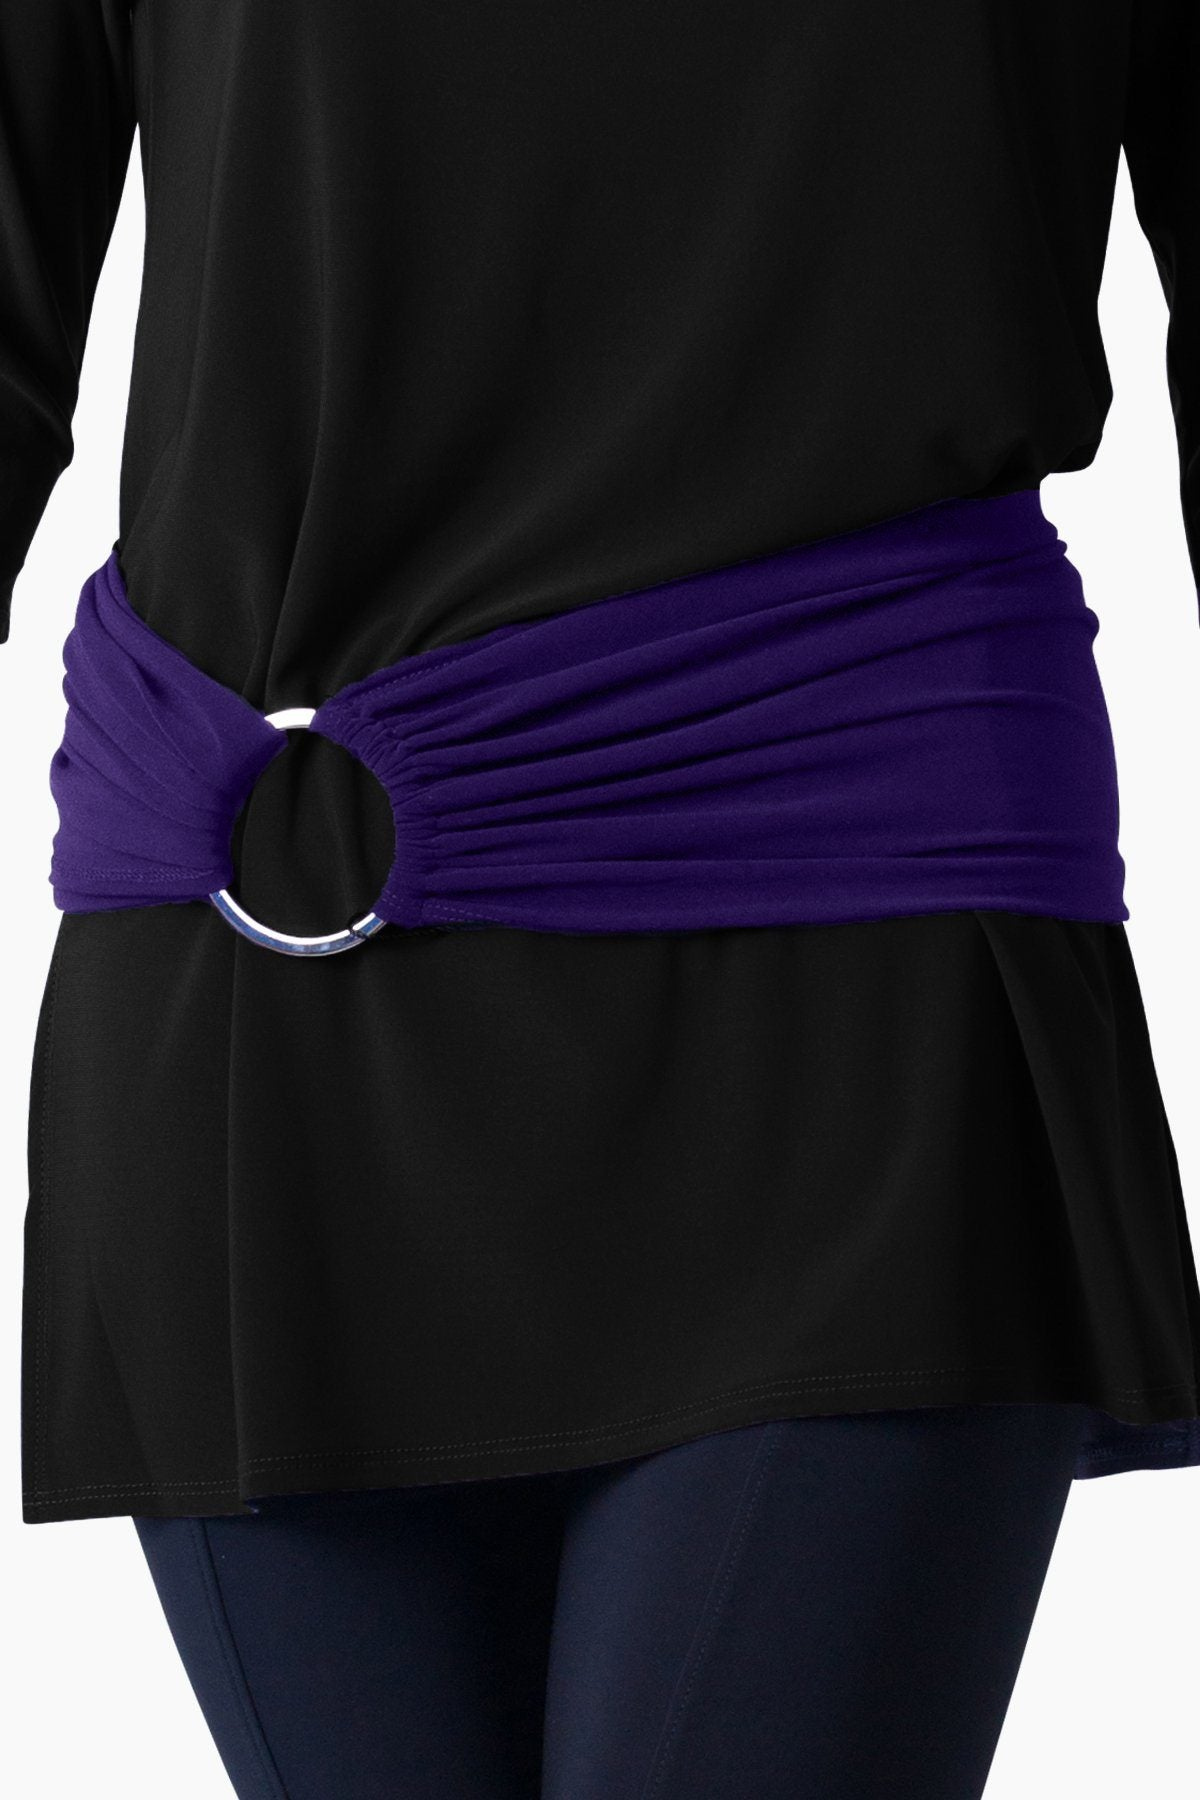 Ring Belt - Women's Clothing -ROSARINI